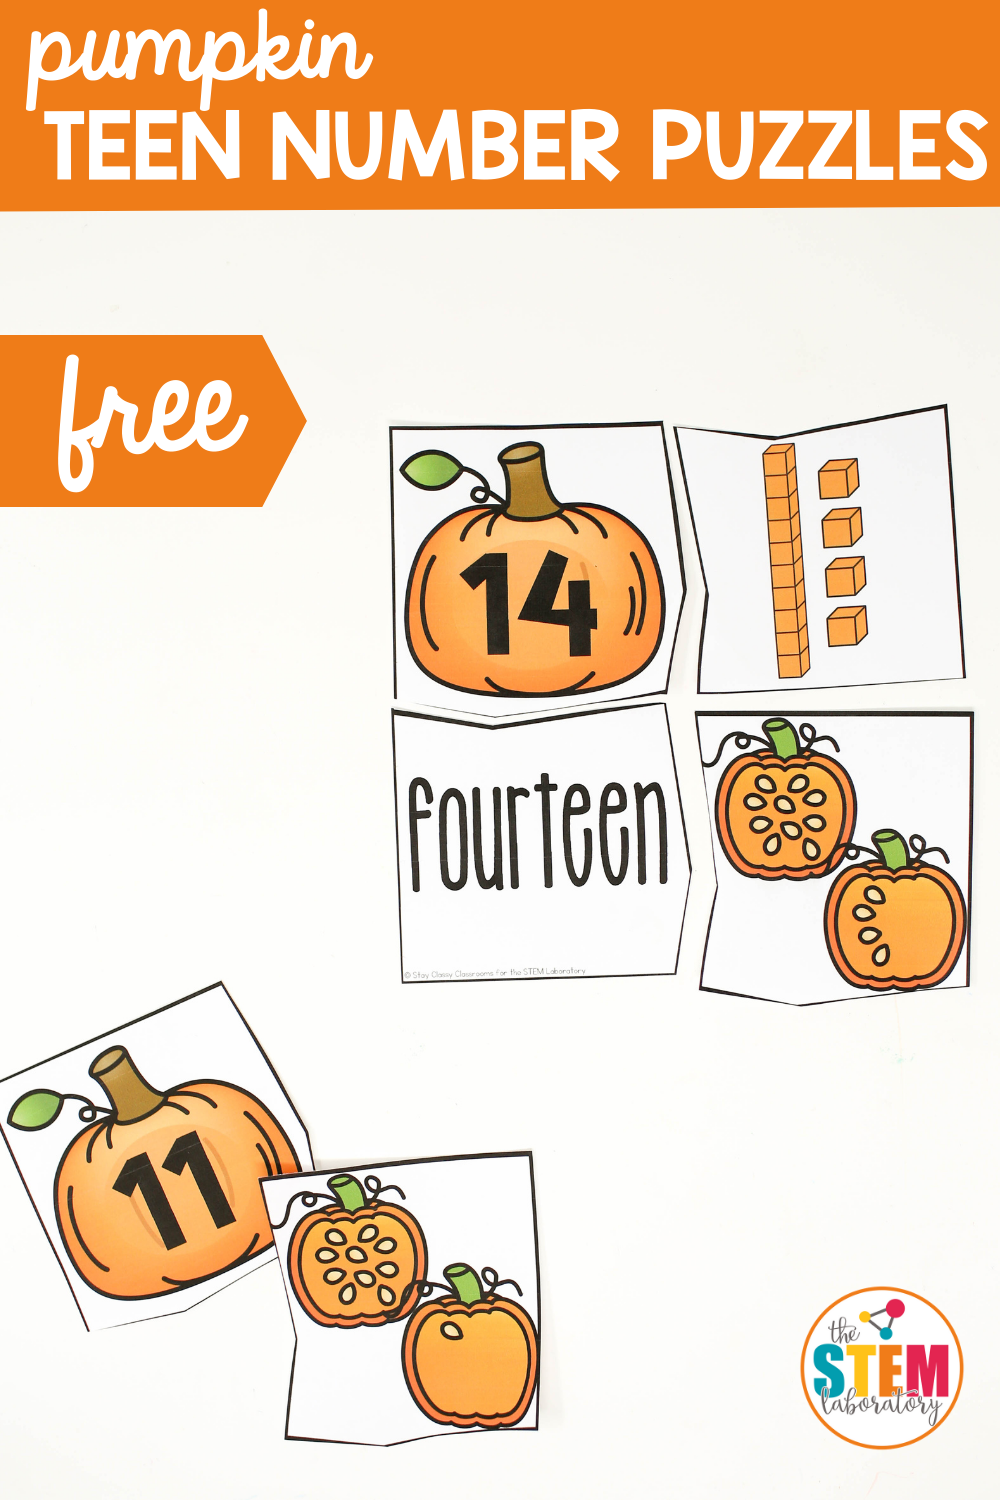 Pumpkin Teen Number Puzzles